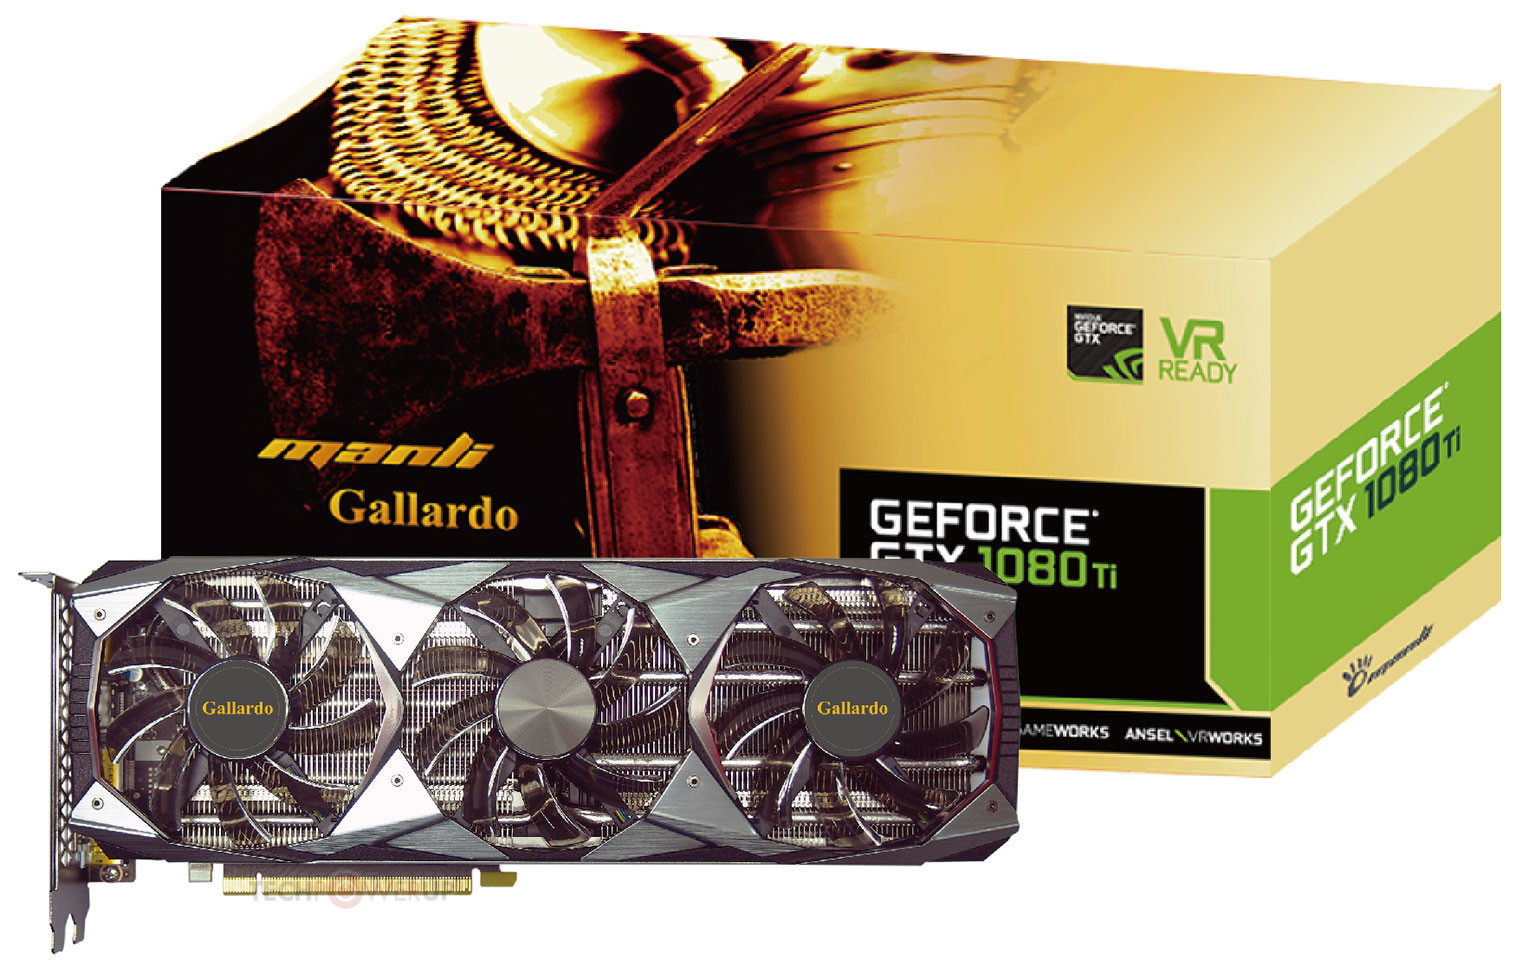 Manli presenta su monstruo GeForce GTX 1080 Ti Gallardo